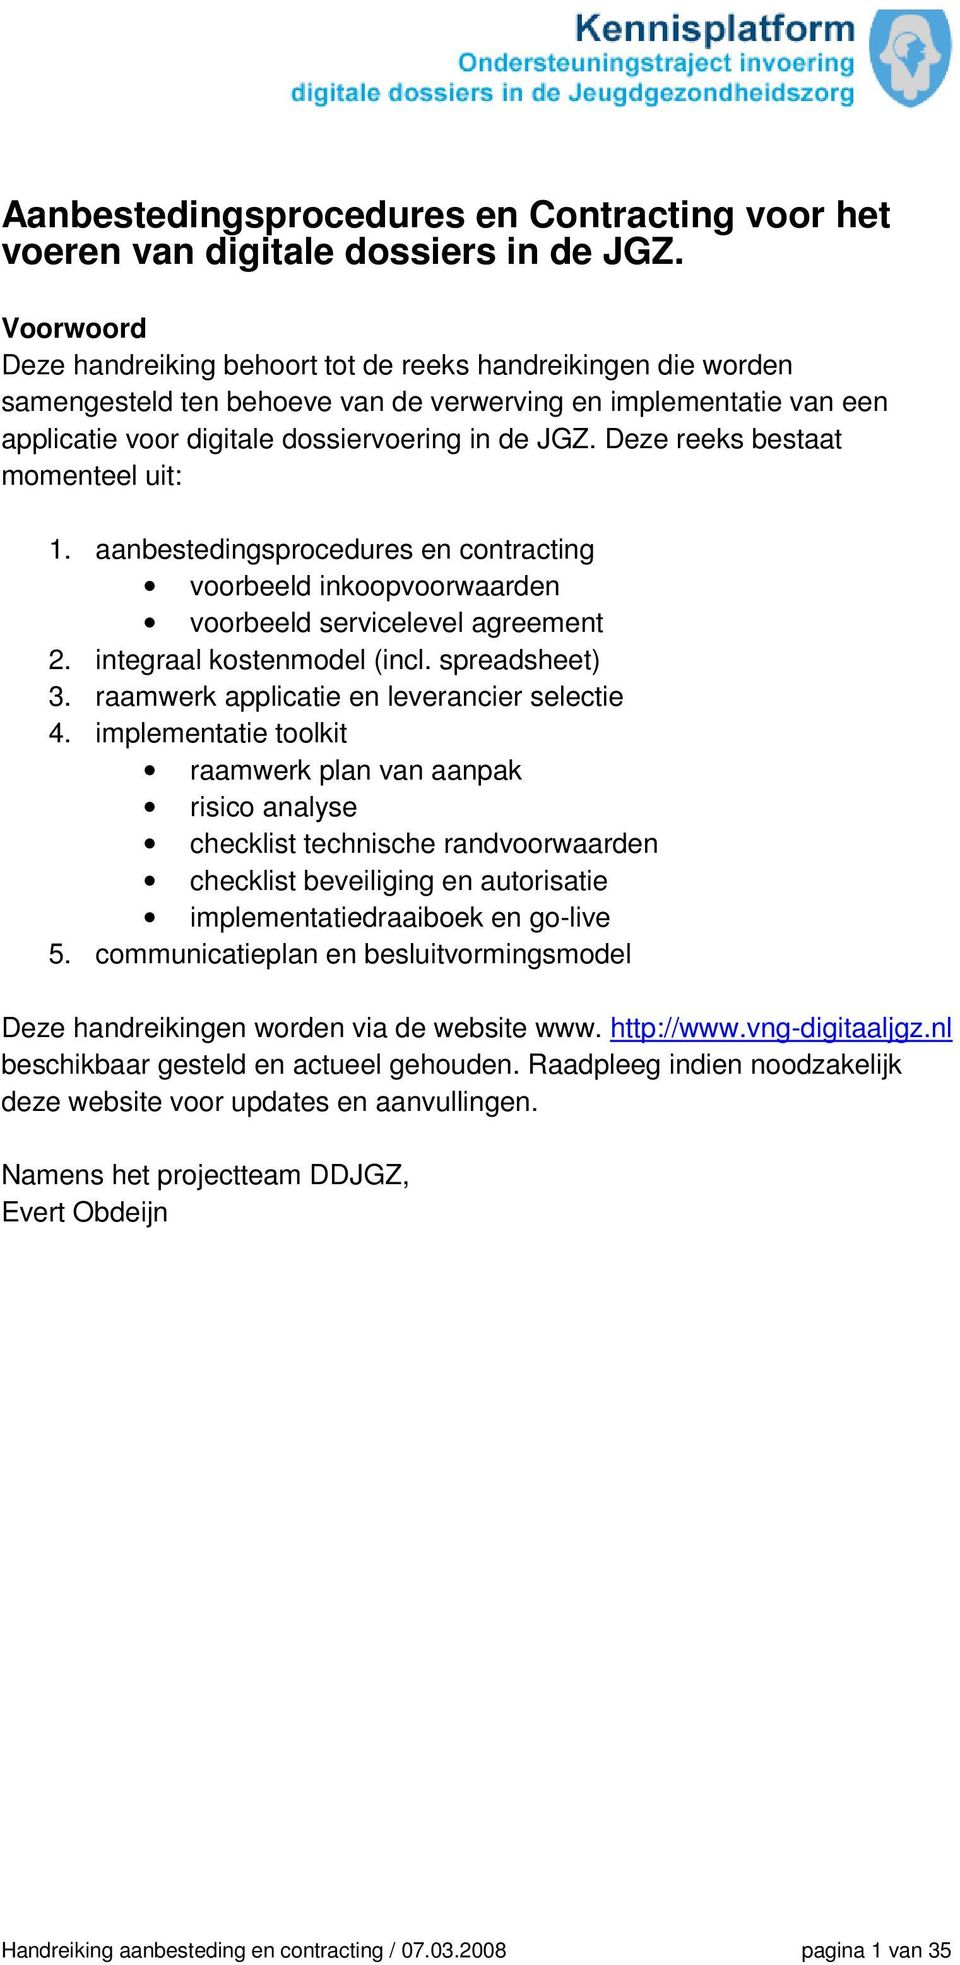 Deze reeks bestaat momenteel uit: 1. aanbestedingsprocedures en contracting voorbeeld inkoopvoorwaarden voorbeeld servicelevel agreement 2. integraal kostenmodel (incl. spreadsheet) 3.